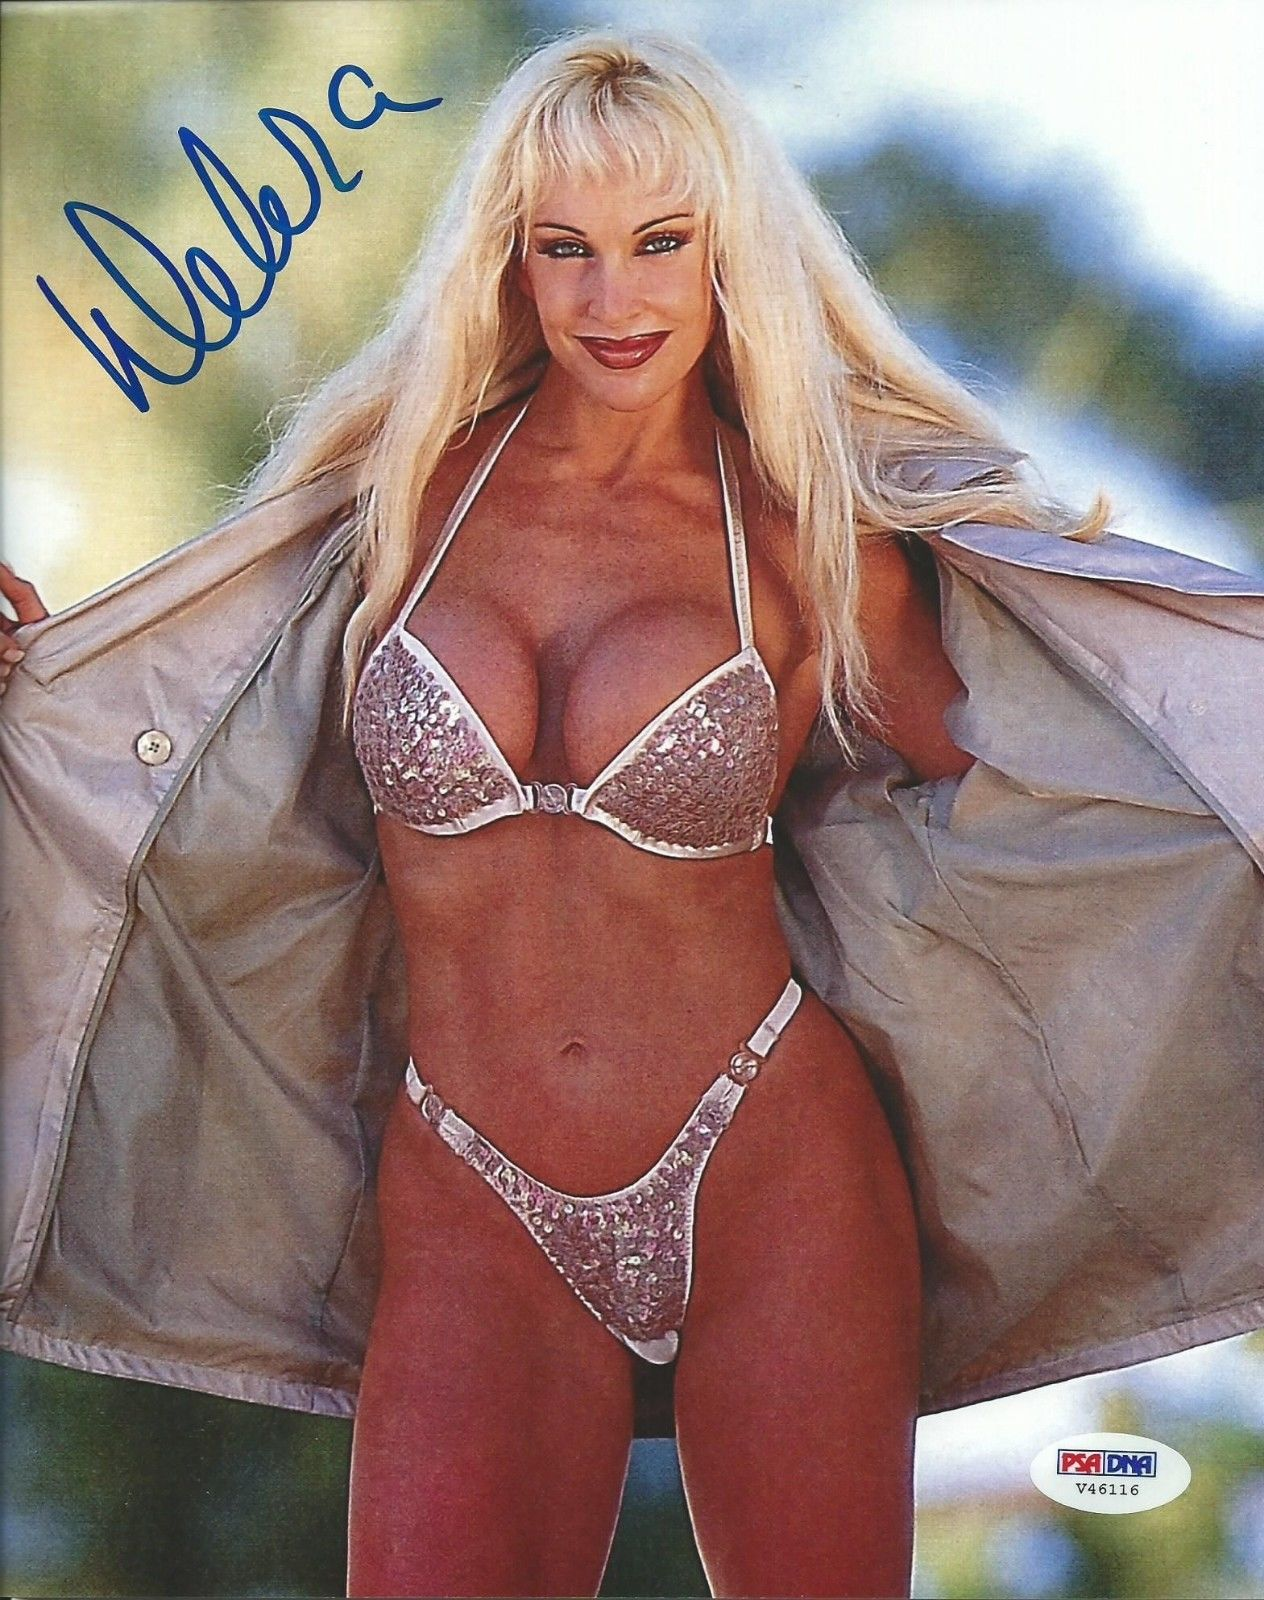 High Quality Autograph - Open Jacket/Bikini